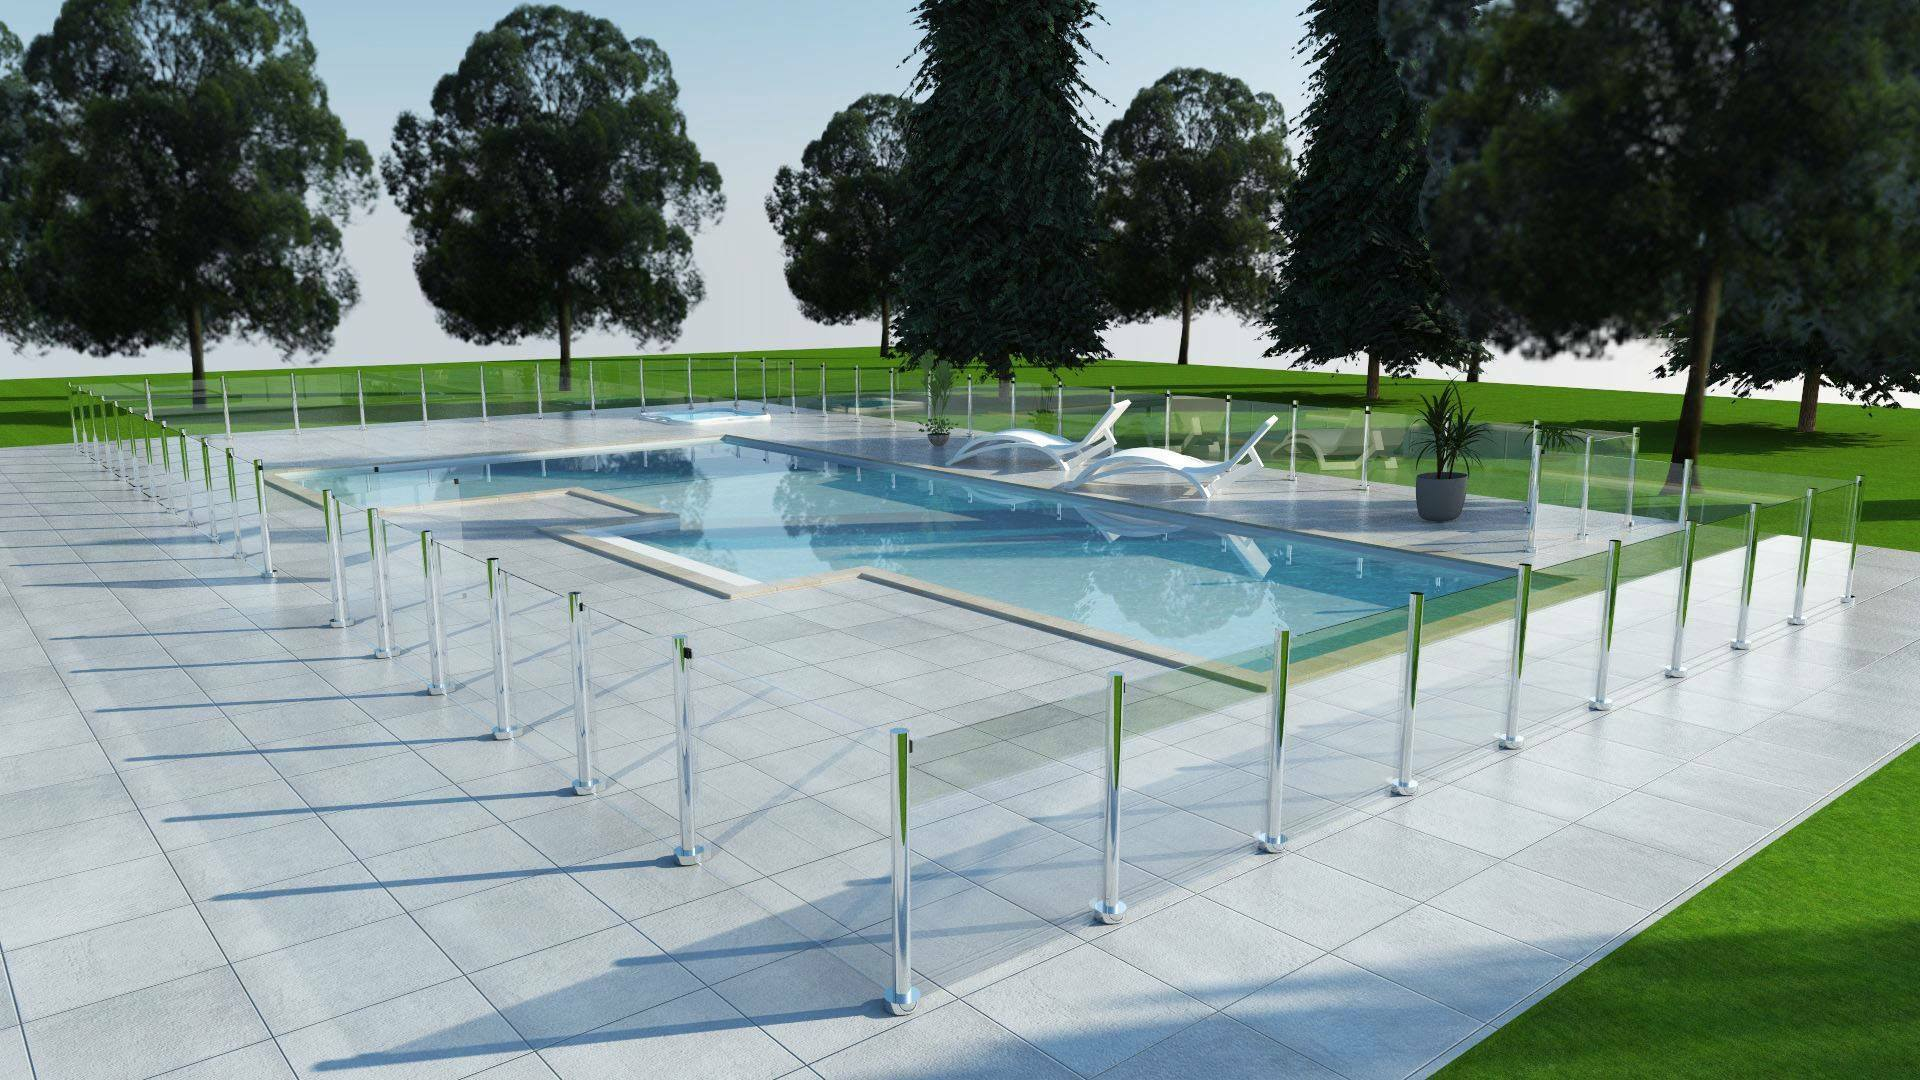 Passion piscines construction piscine gap hautes alpes for Passion piscine